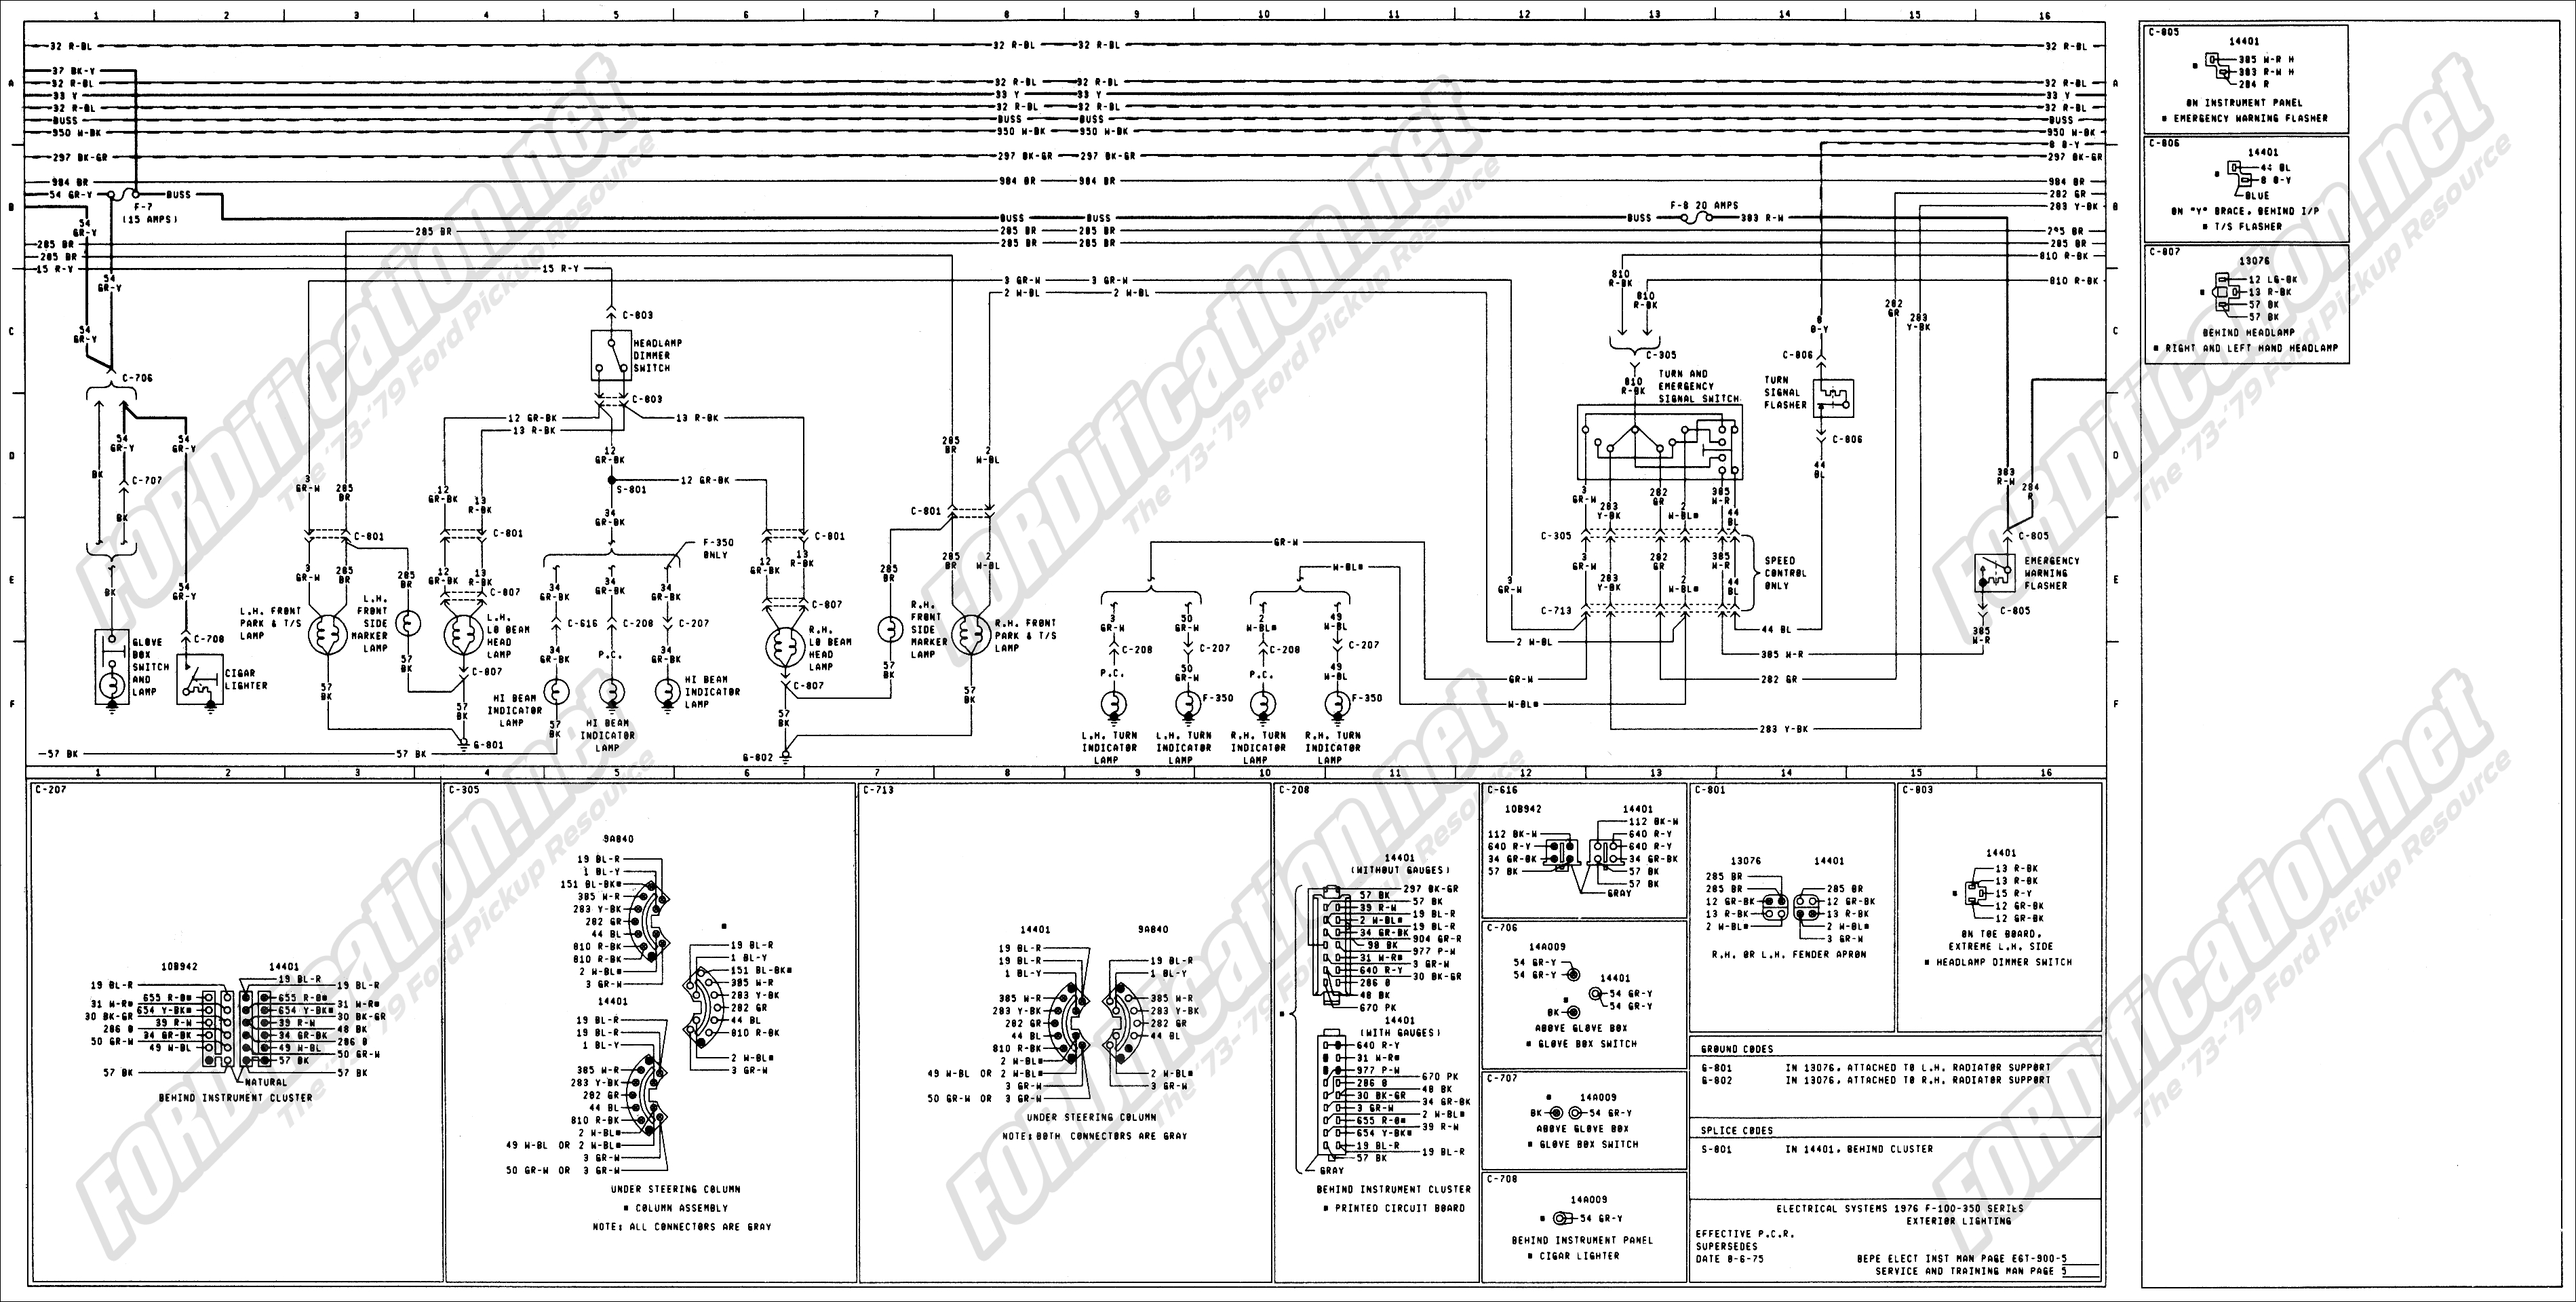 ford trailer wiring diagram round 76 online schematic diagram u2022 rh tentenny com Ford 7 Pin Trailer Wiring Diagram F350 Trailer Wiring Diagram